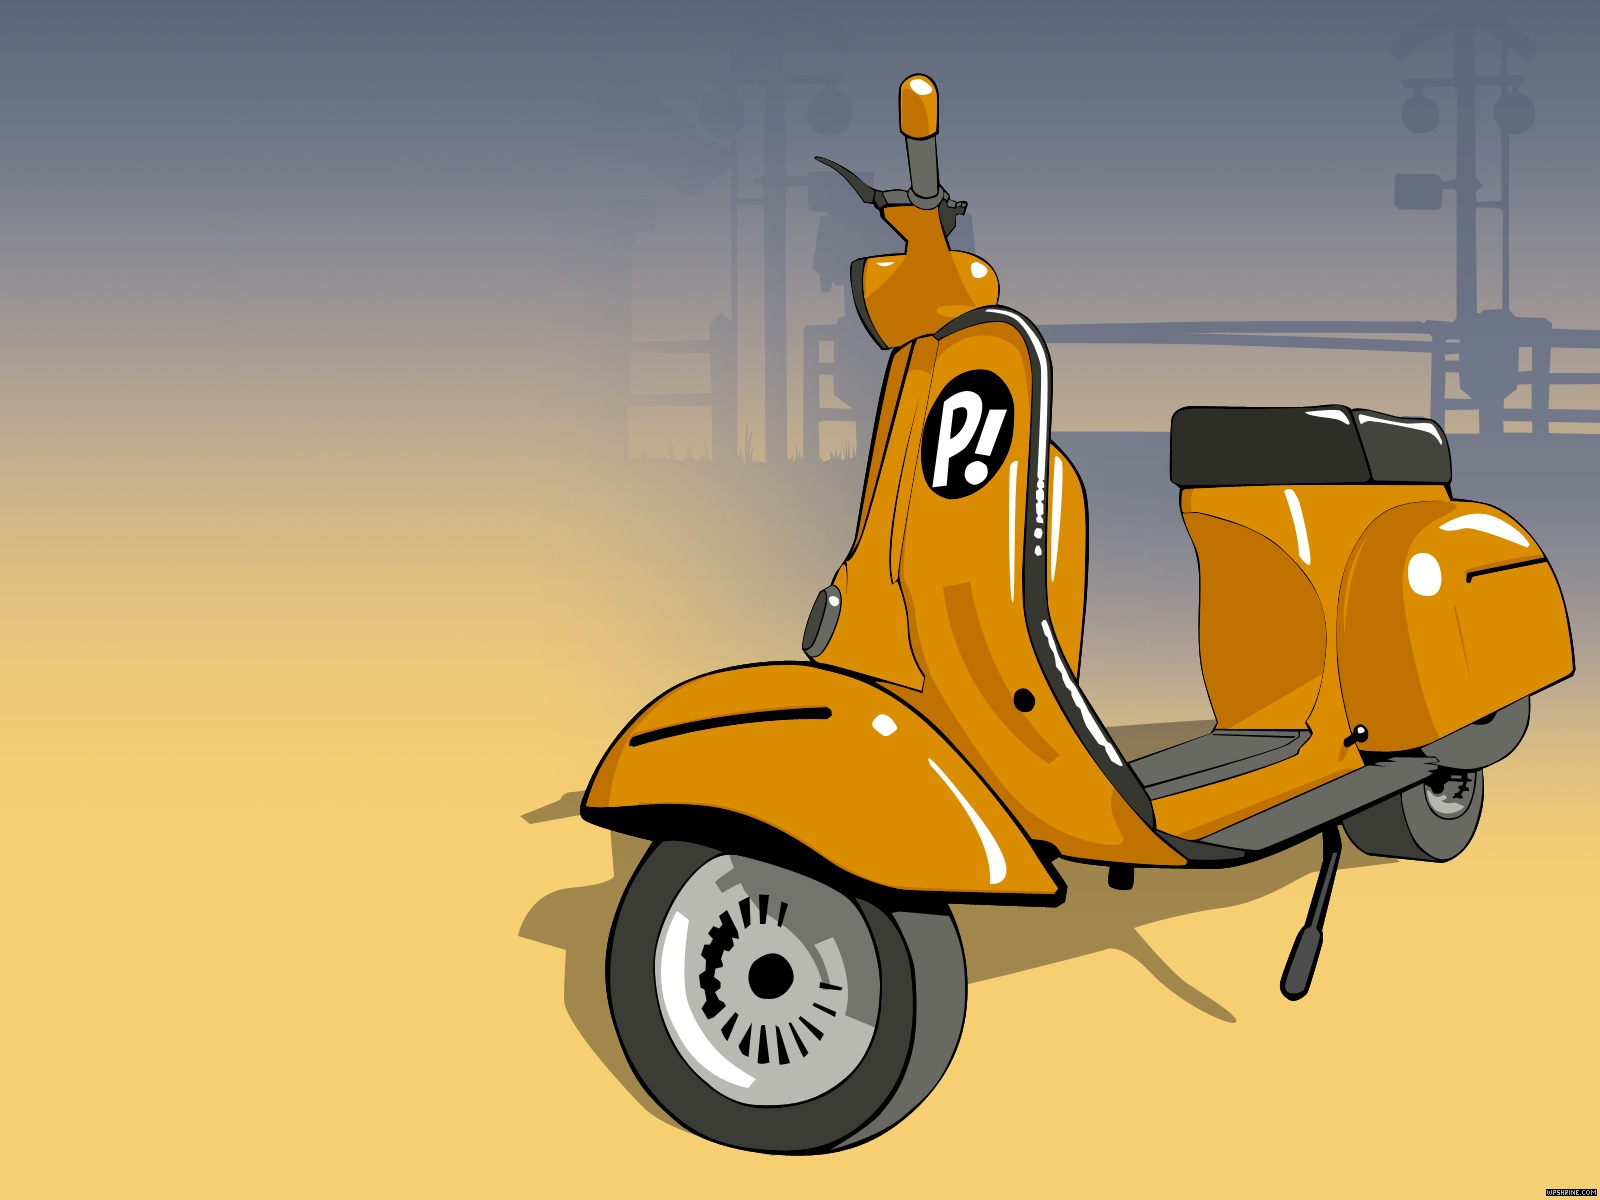 Yellow Vespa Cartoon - Yellow Vespa Cartoon